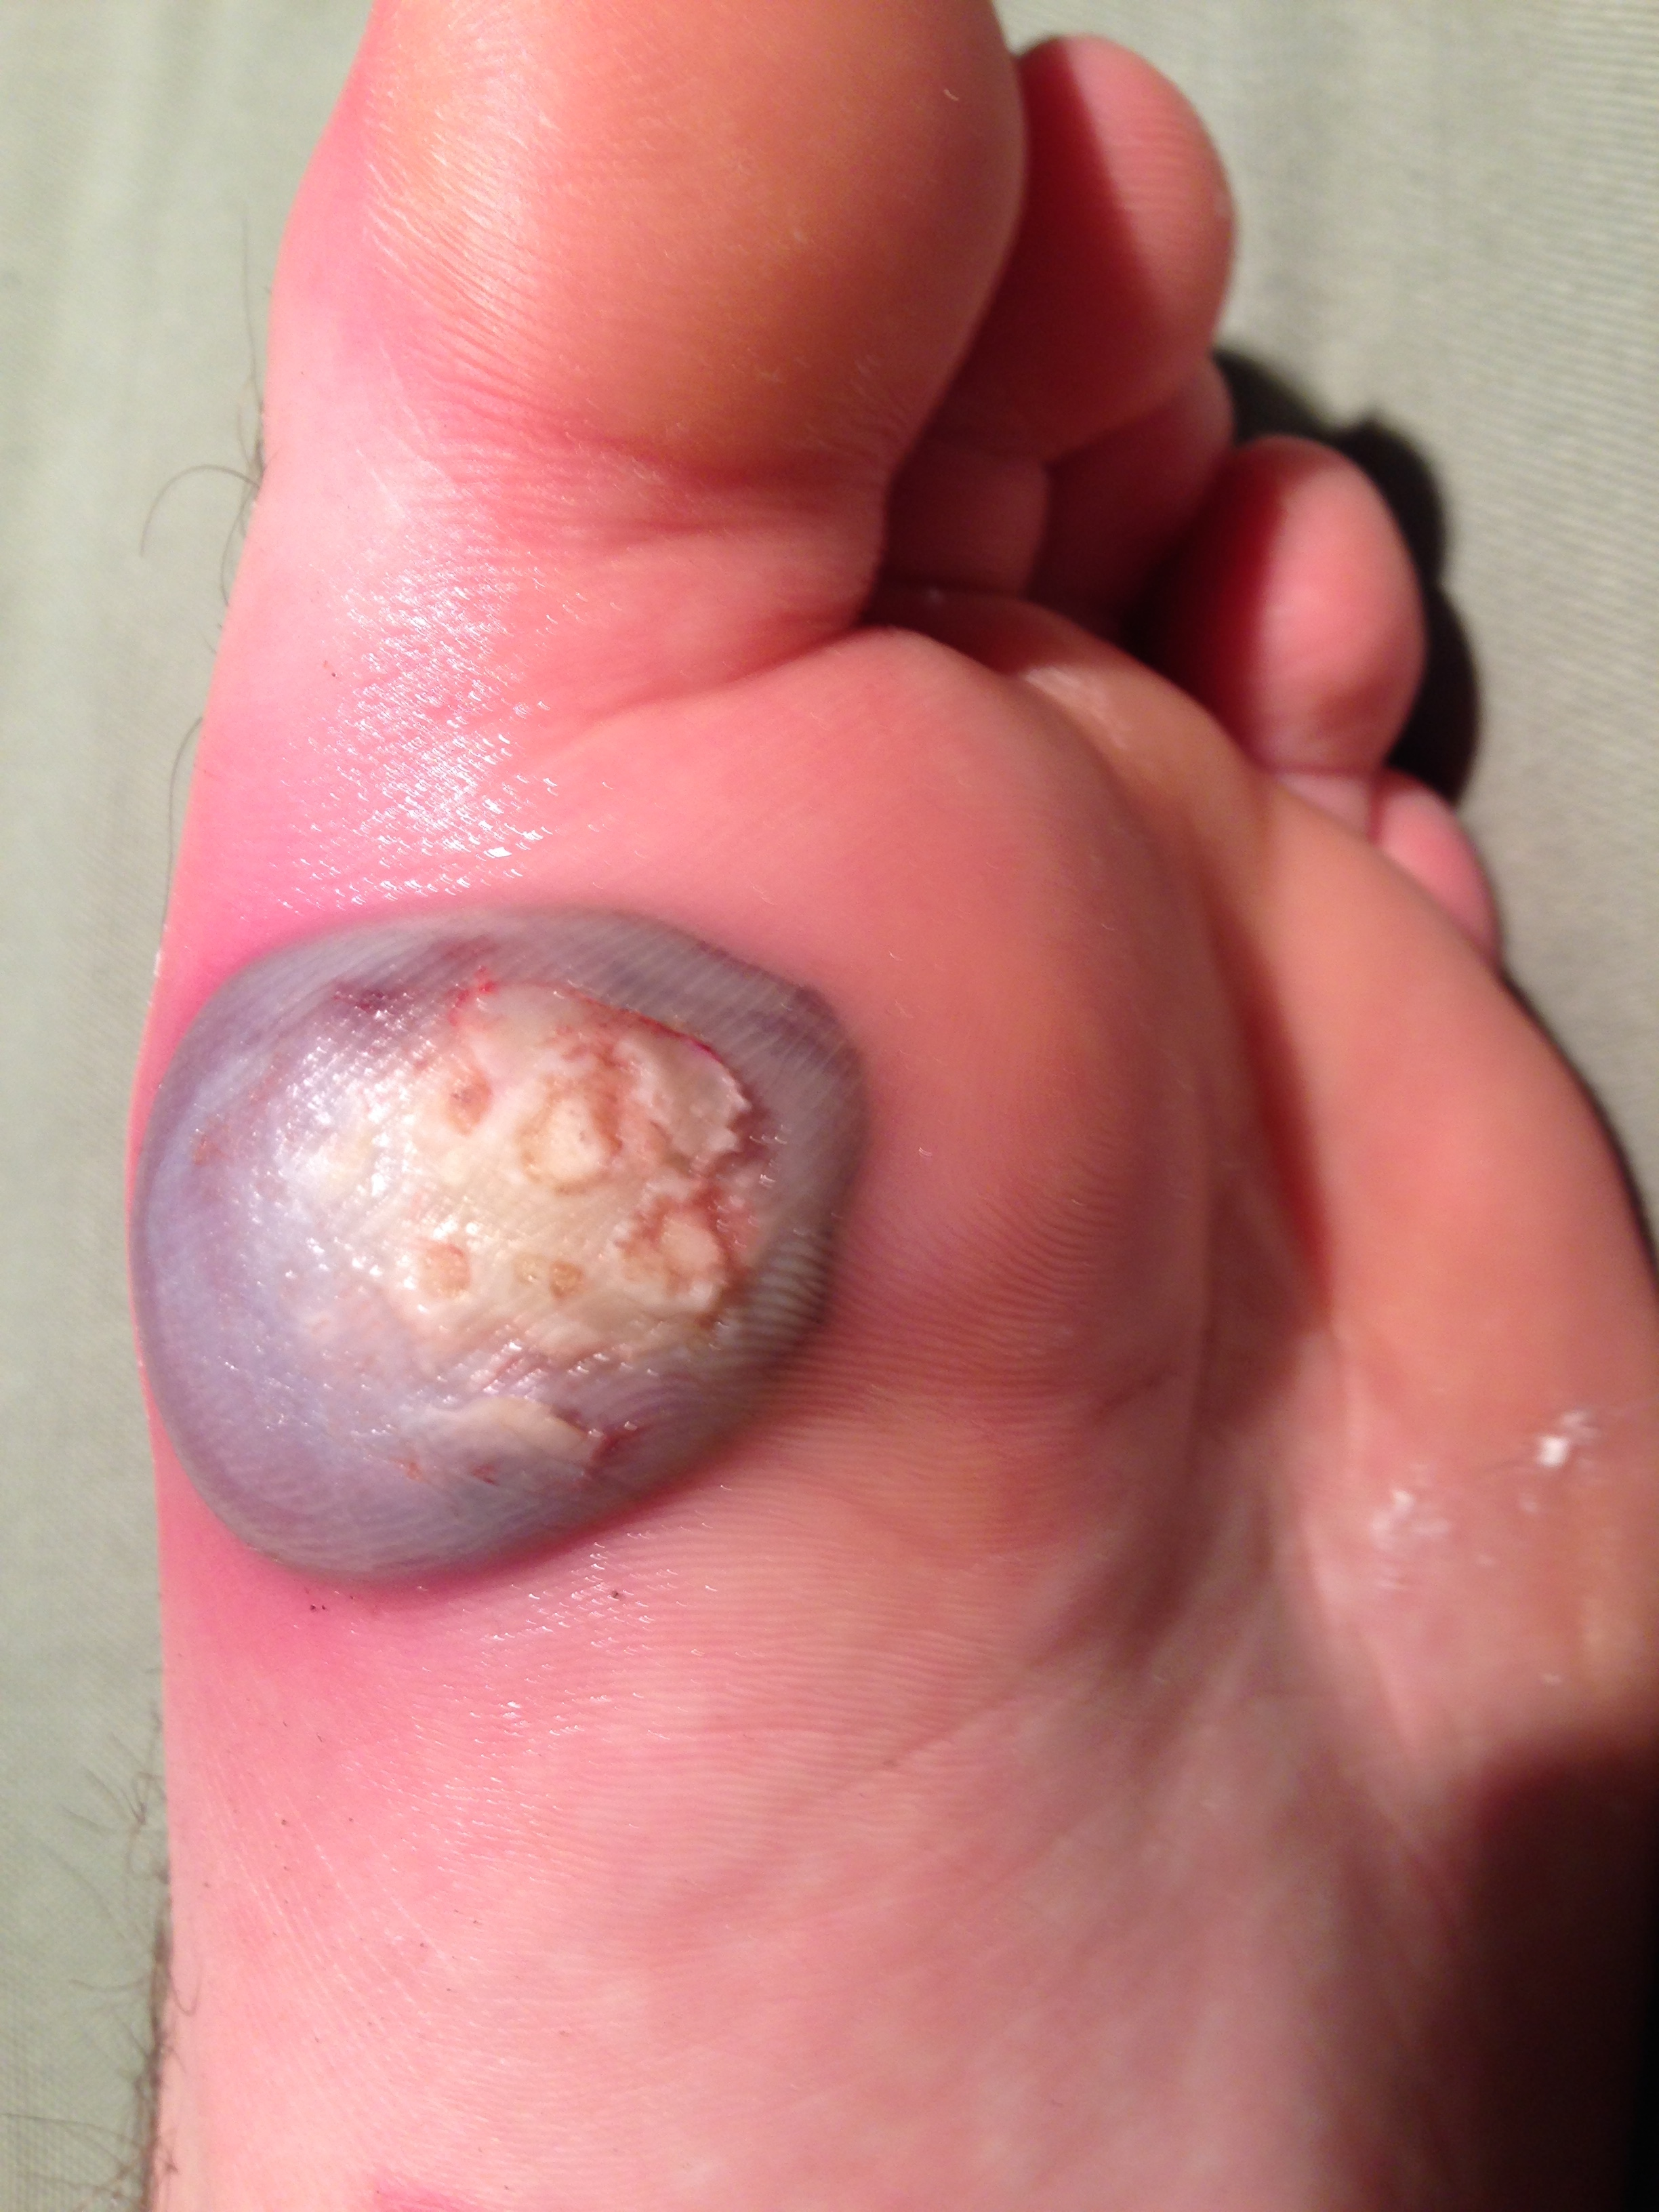 wart on foot or blister